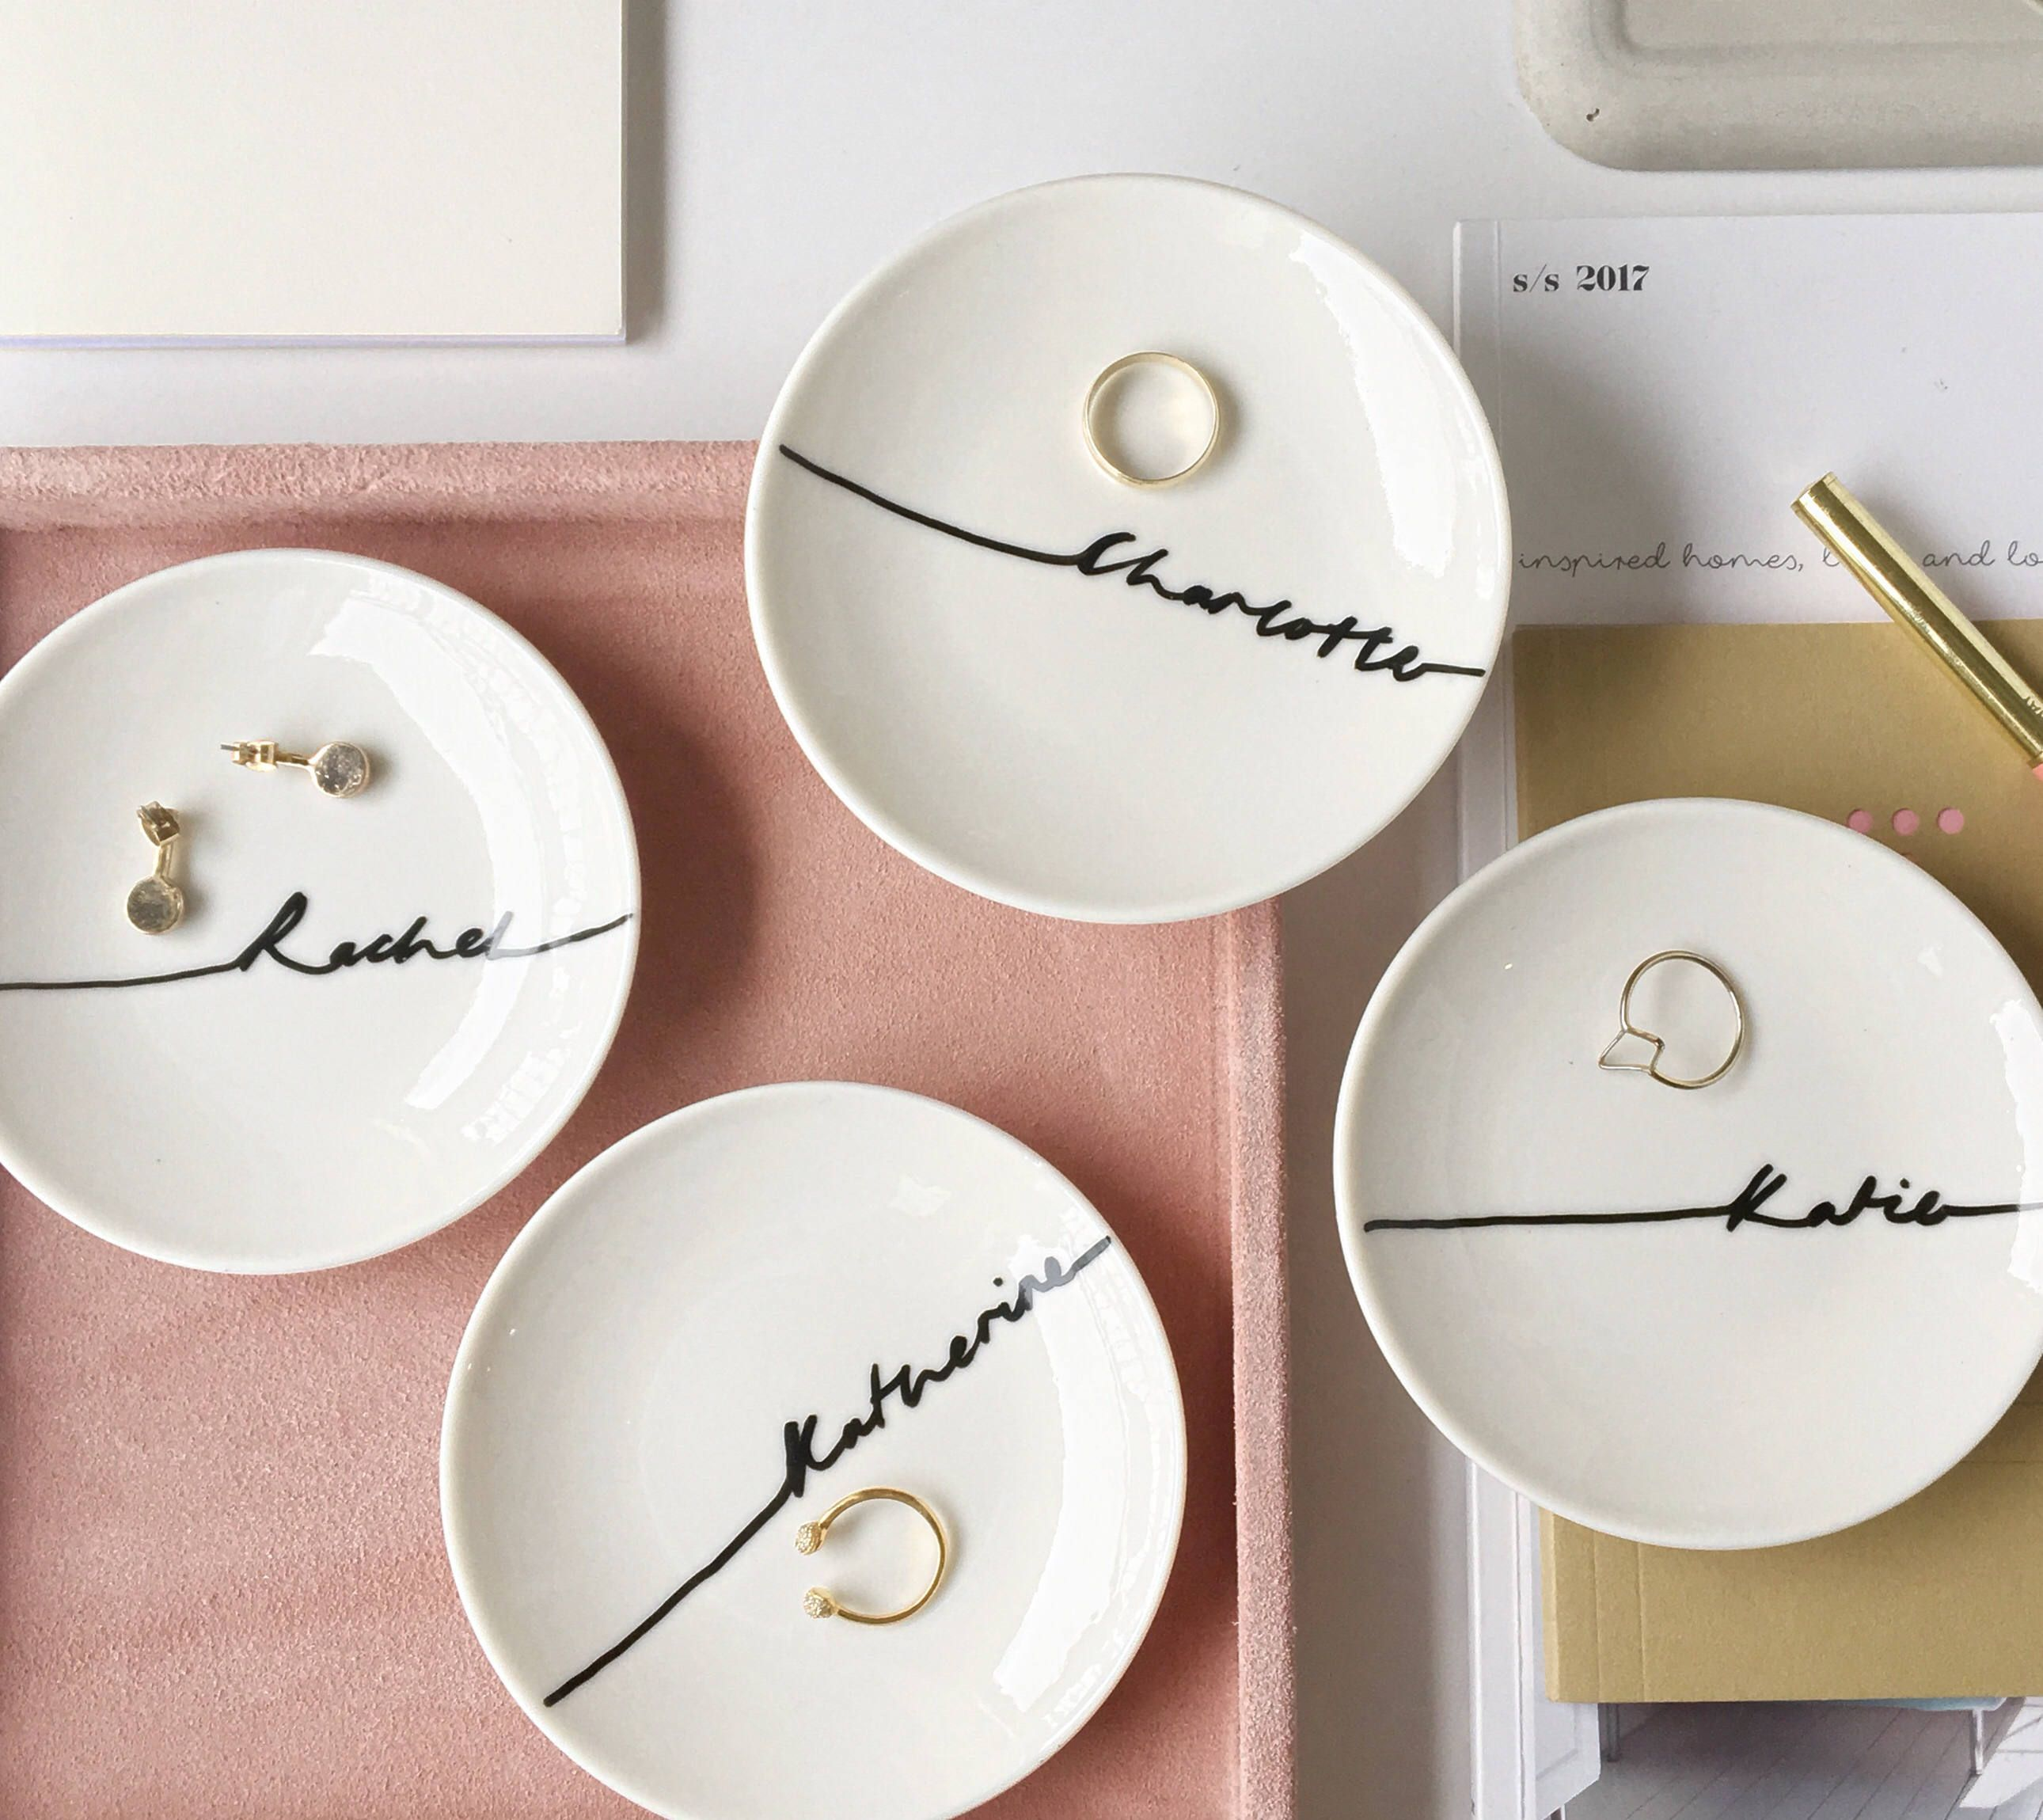 Nice Wedding Gift Ideas: A Personalized Jewelry Dish Is A Great Way To Say Thank